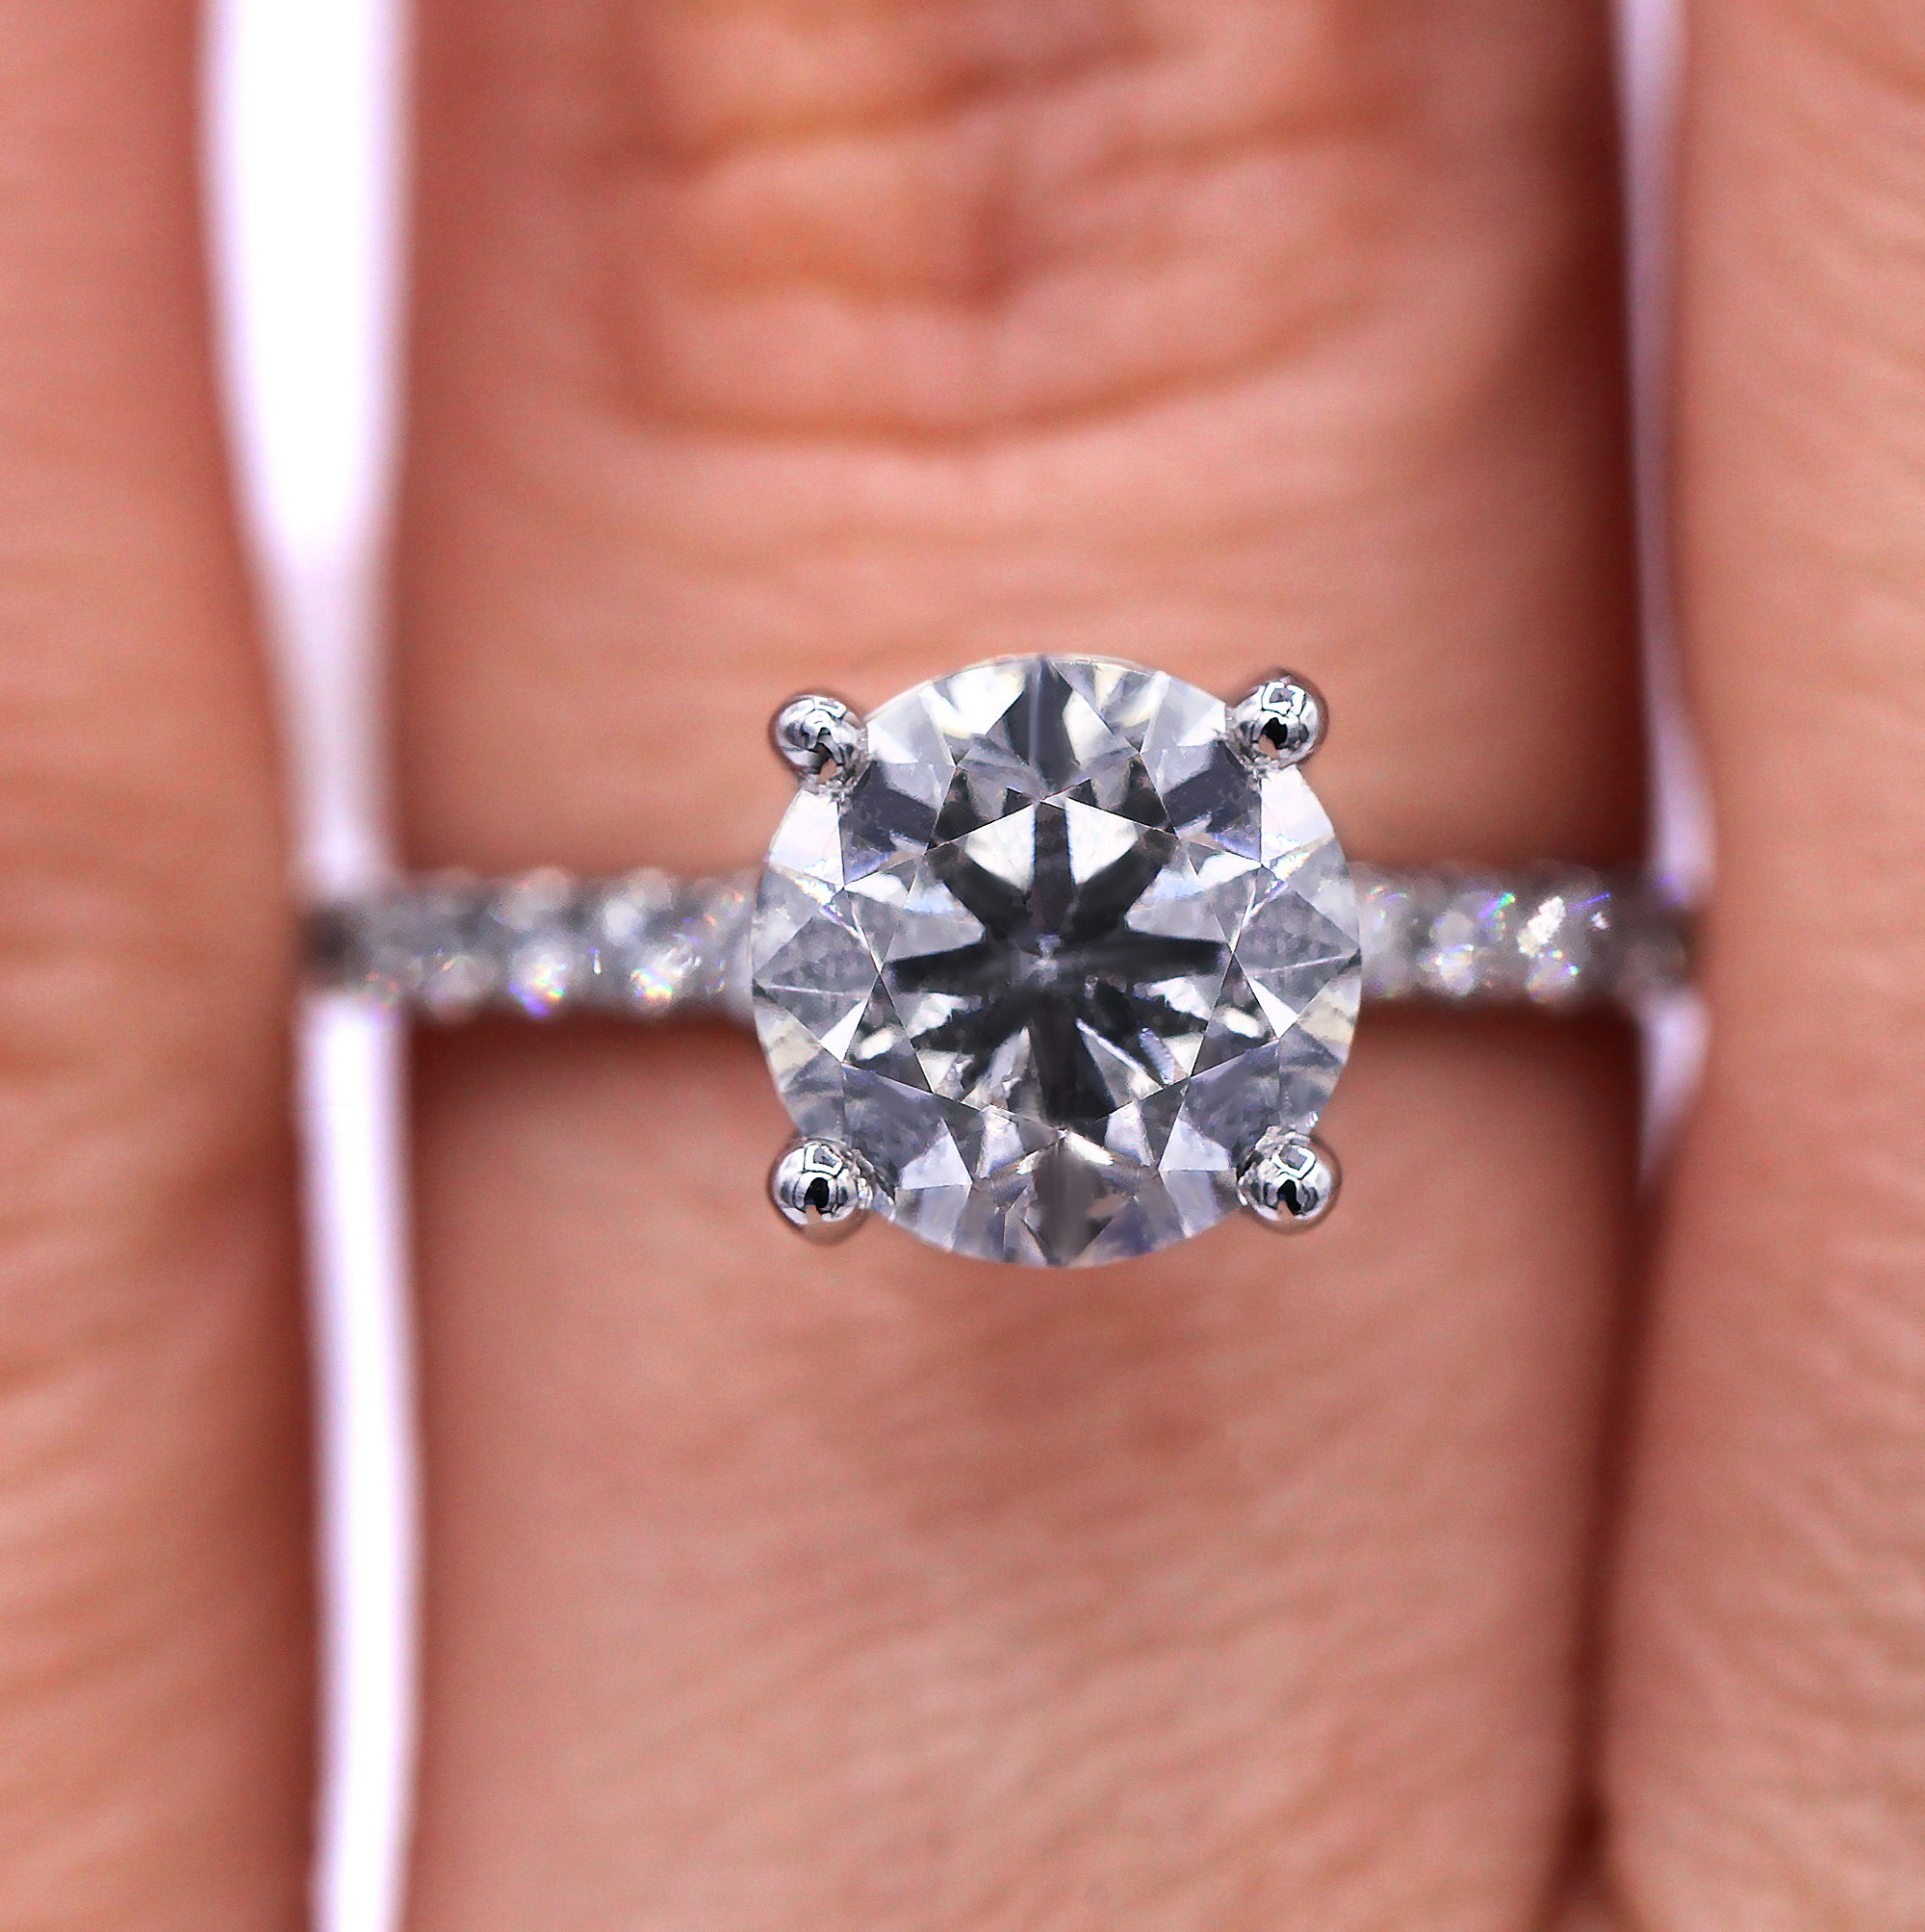 Stunning 2.40cts diamond engagement ring